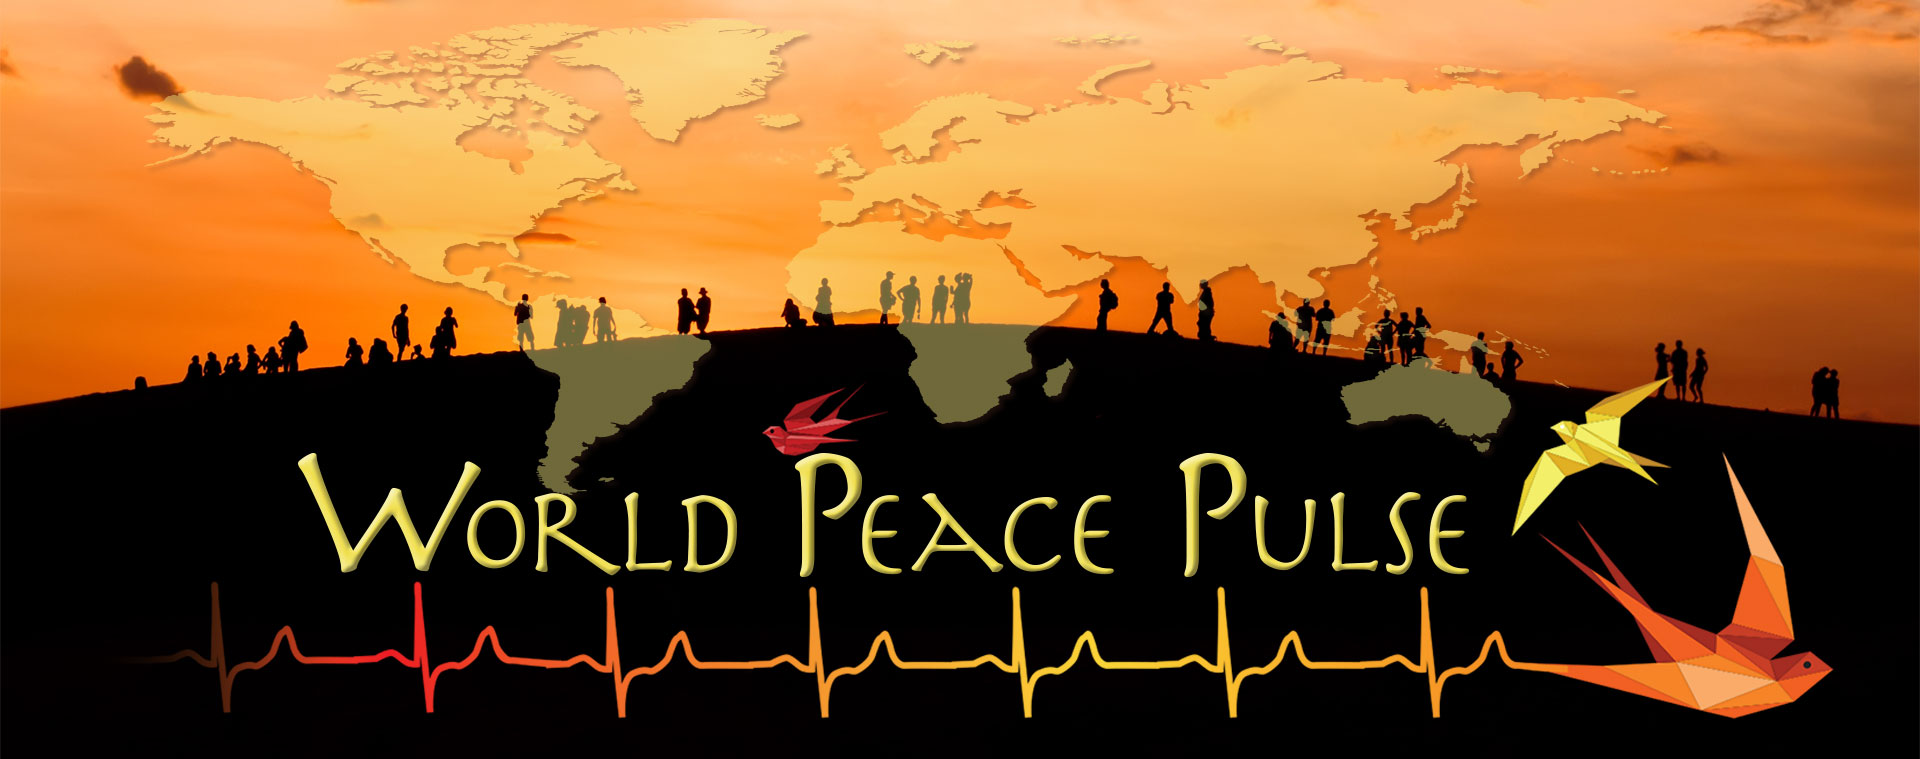 World Peace Pulse - James Twyman